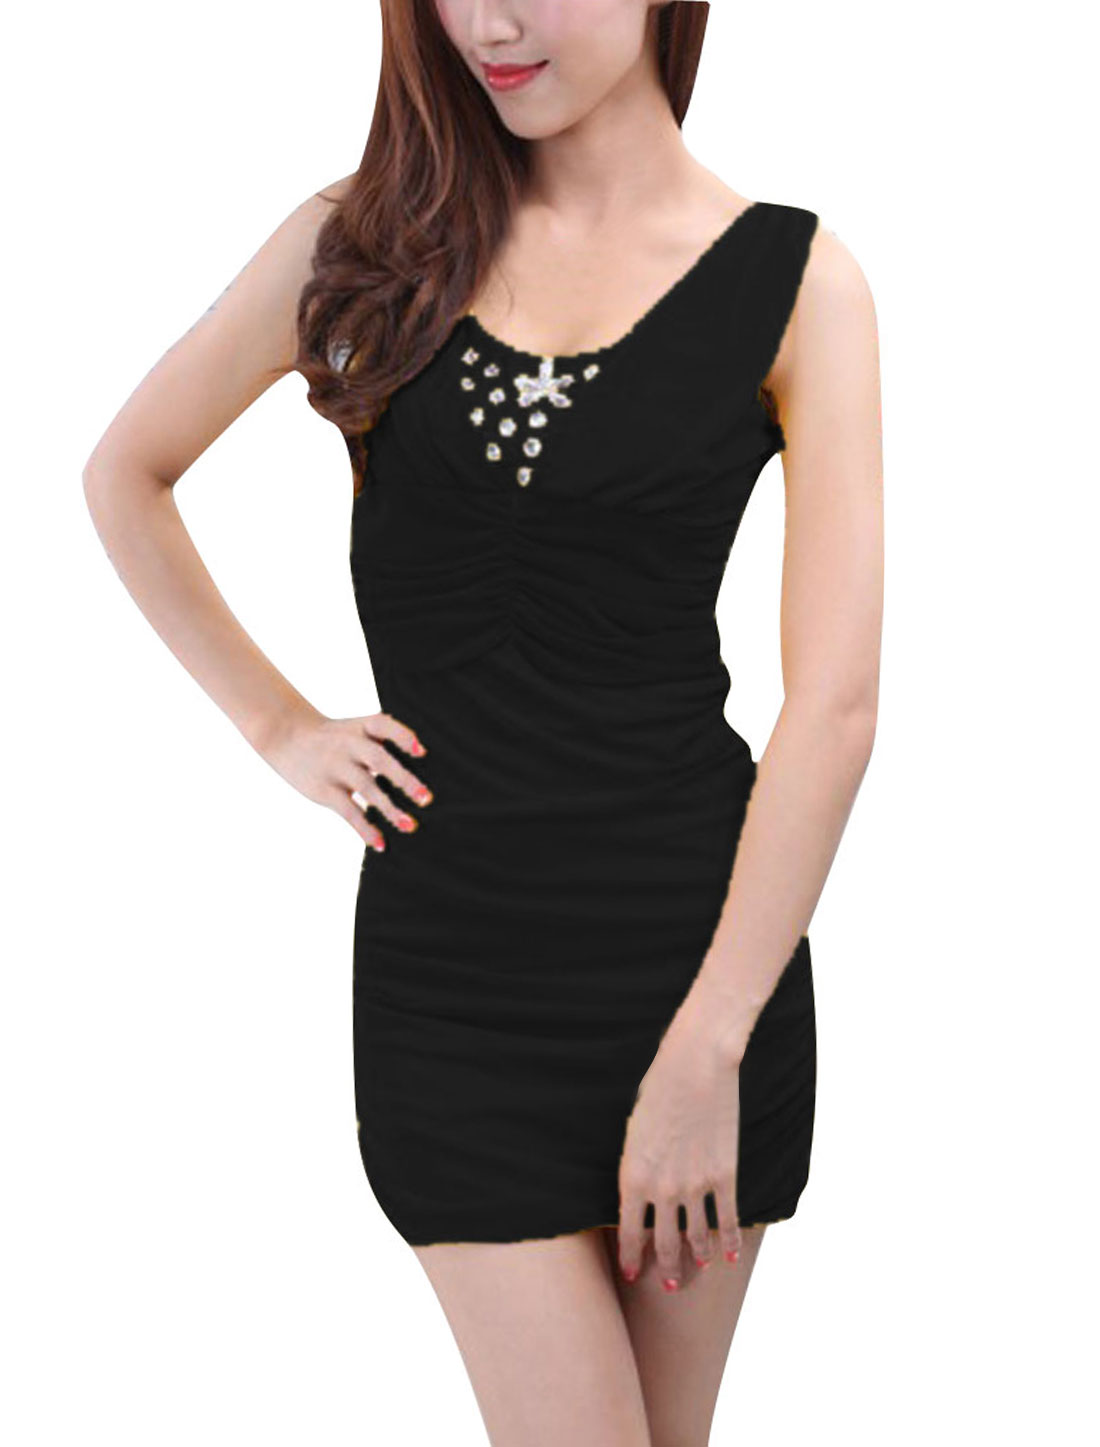 Woman Scoop Neck Ruched Bust Design Rhinestones Decor Black Mini Dress XS